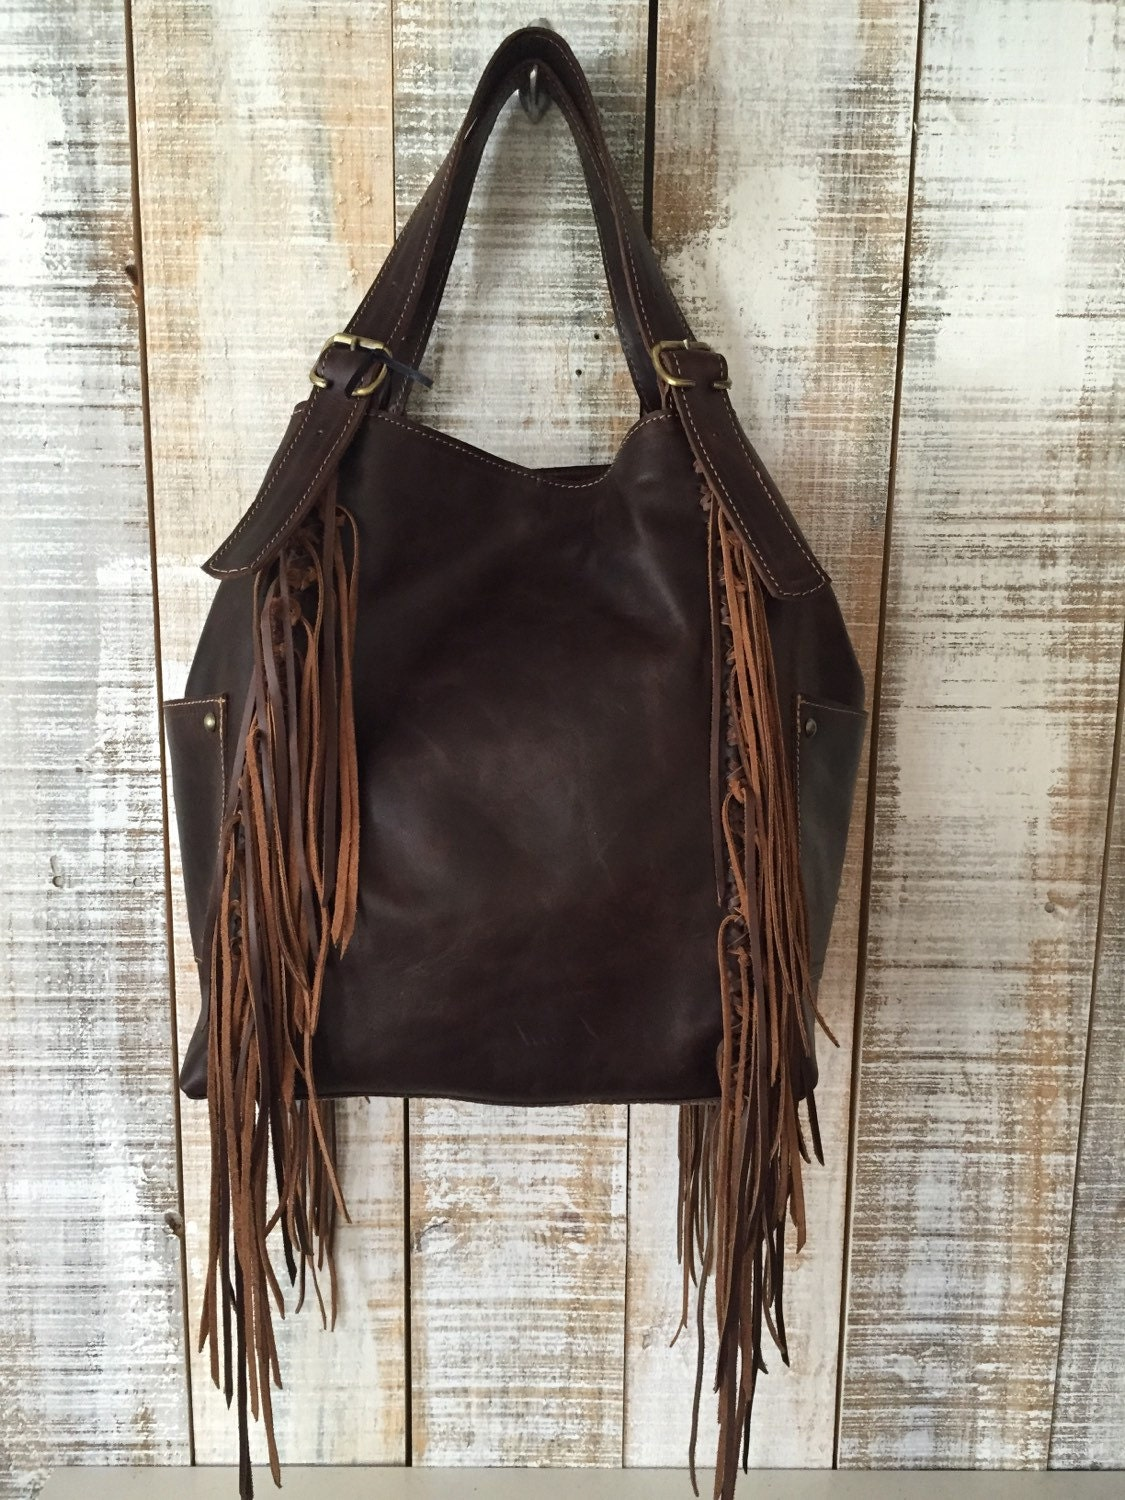 You searched for: brown leather fringe bag! Etsy is the home to thousands of handmade, vintage, and one-of-a-kind products and gifts related to your search. No matter what you're looking for or where you are in the world, our global marketplace of sellers can help you .